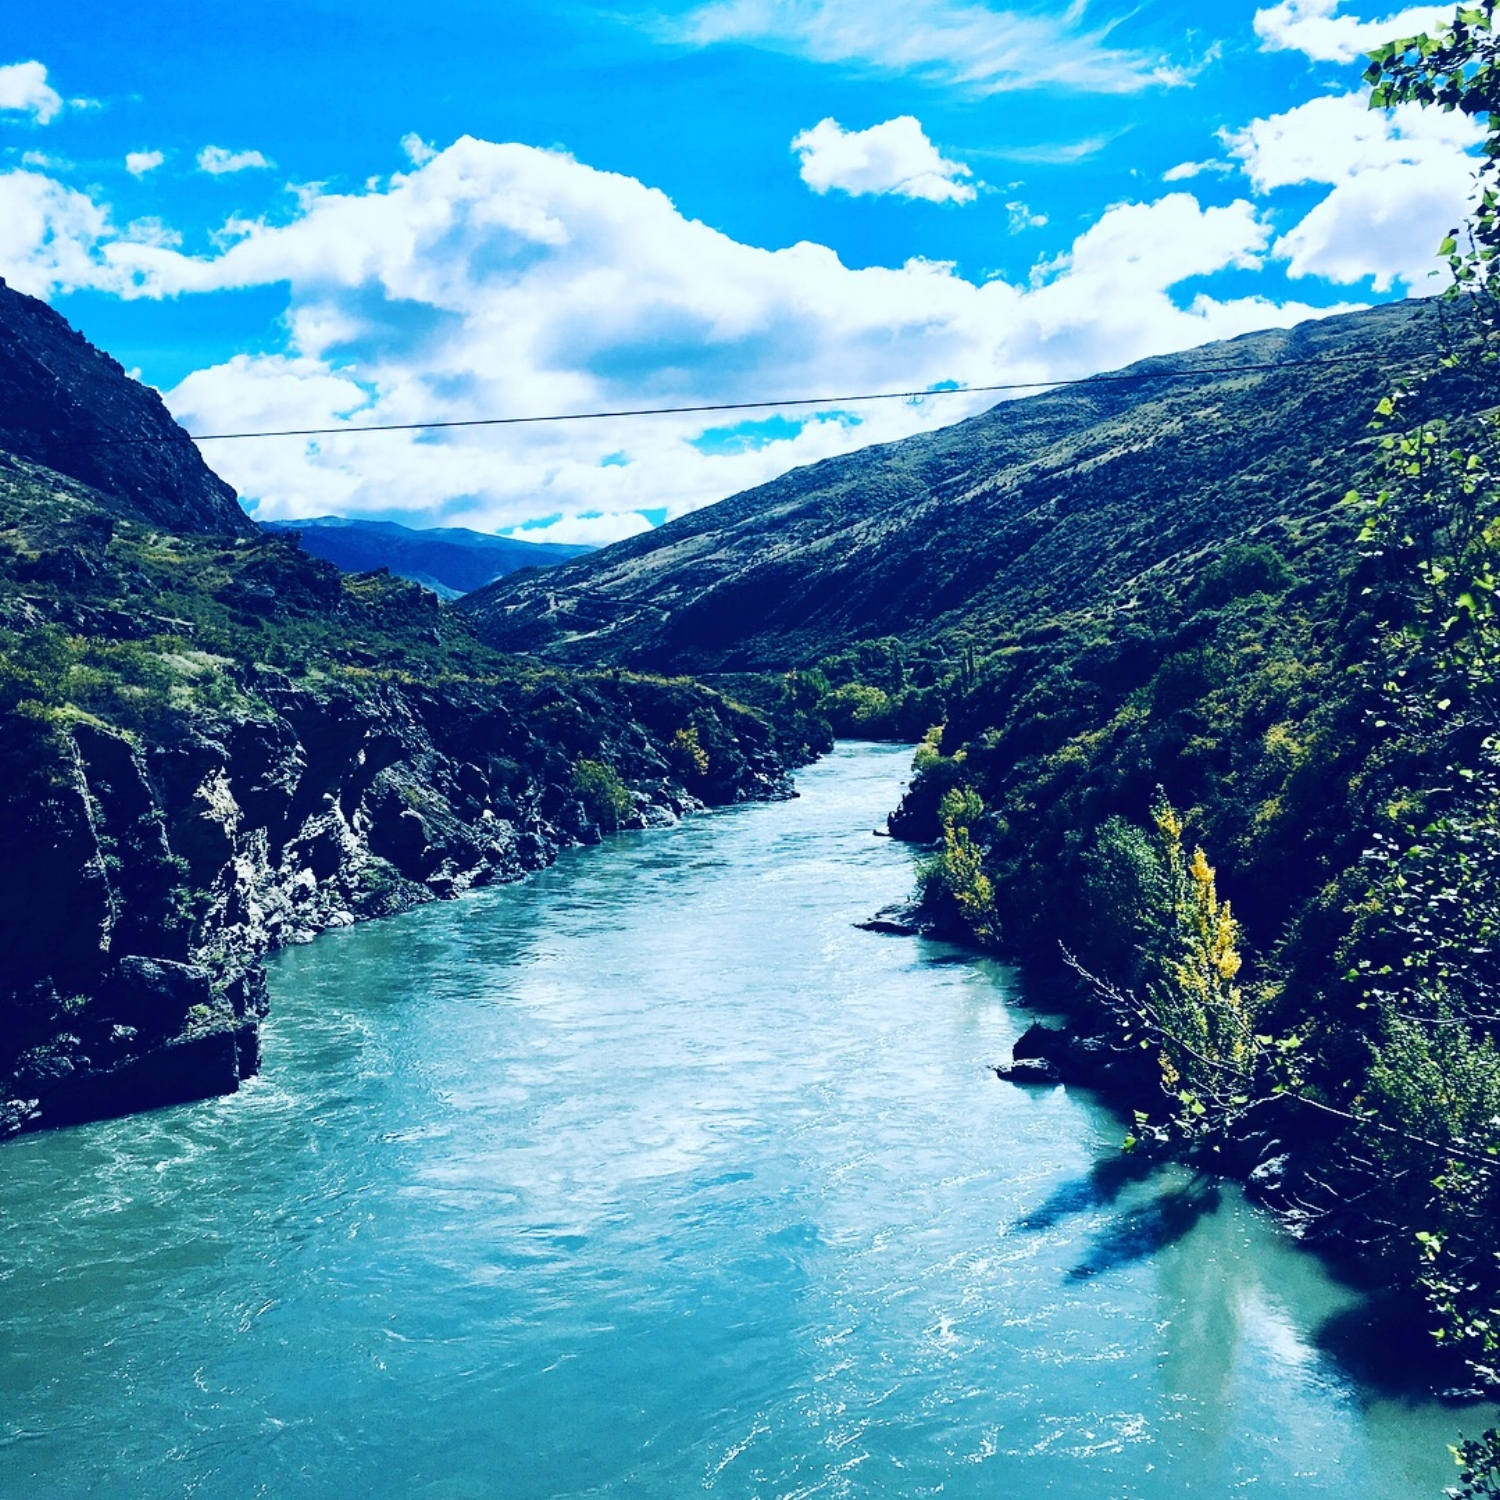 The Kawarau River, flowing beside Wild Earth Wines, located in Cromwell, Central Otago, NZ